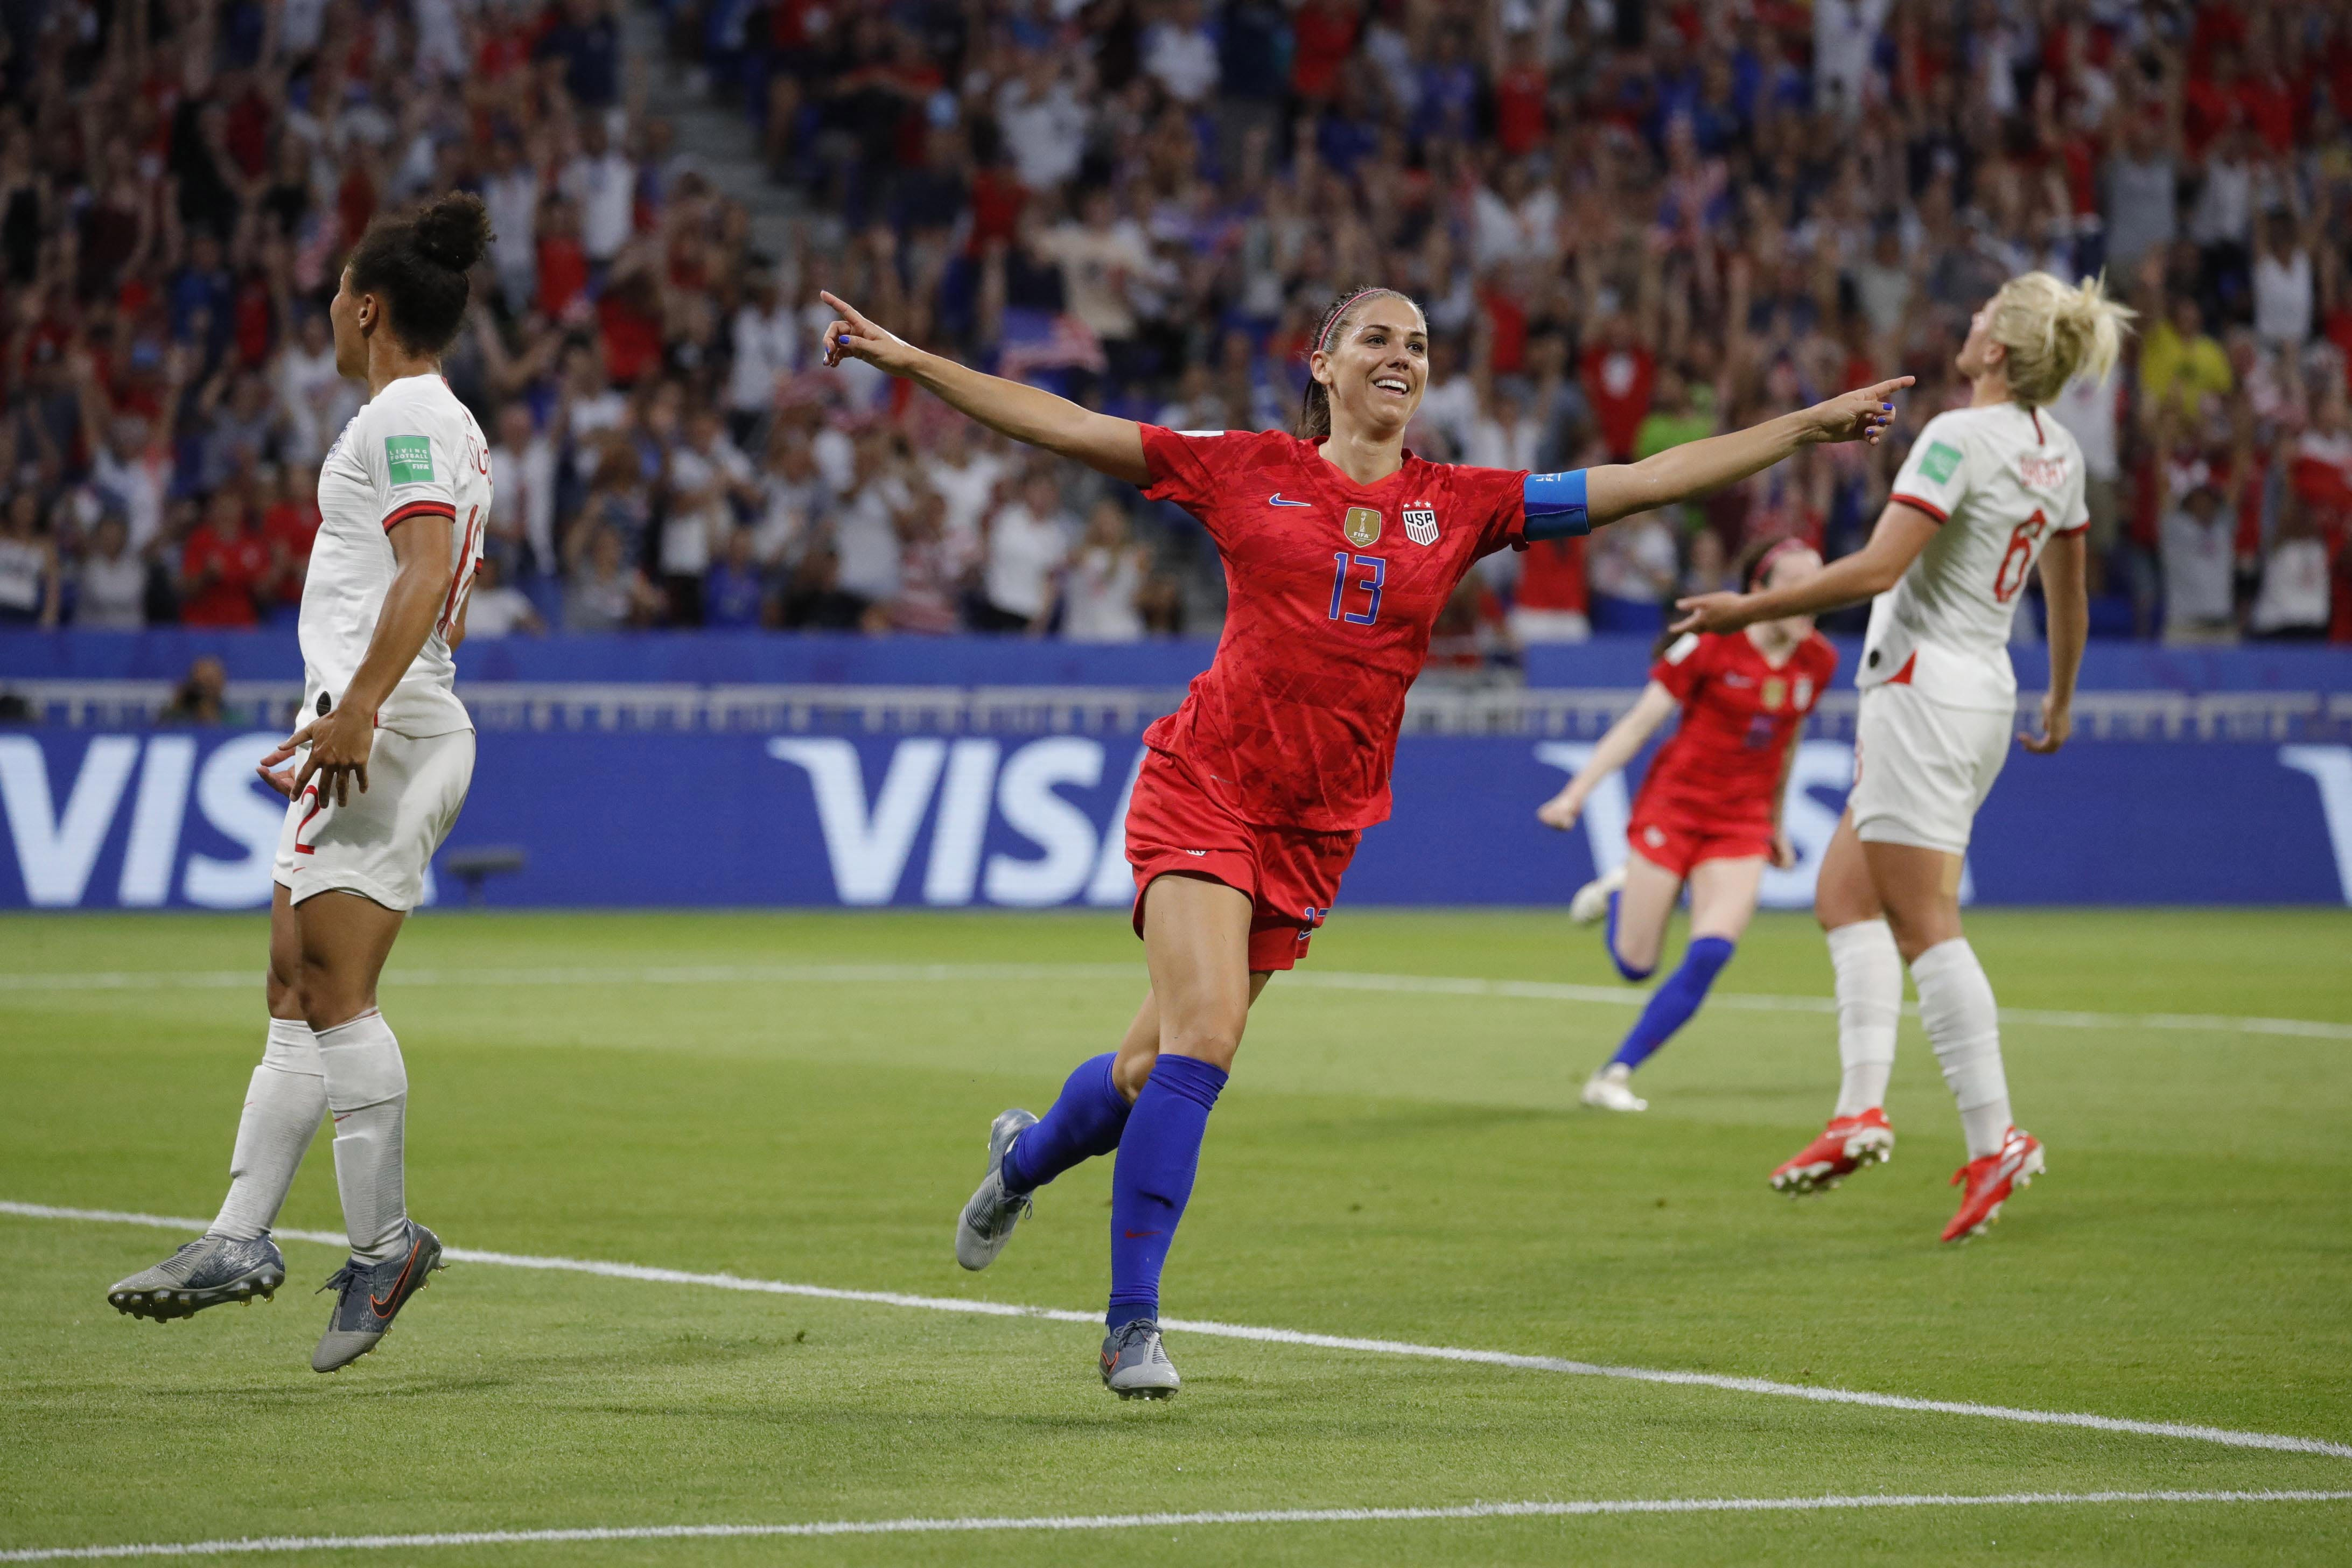 Happy birthday, Alex Morgan! Remembering her birthday goal at the 2019 Women's World Cup